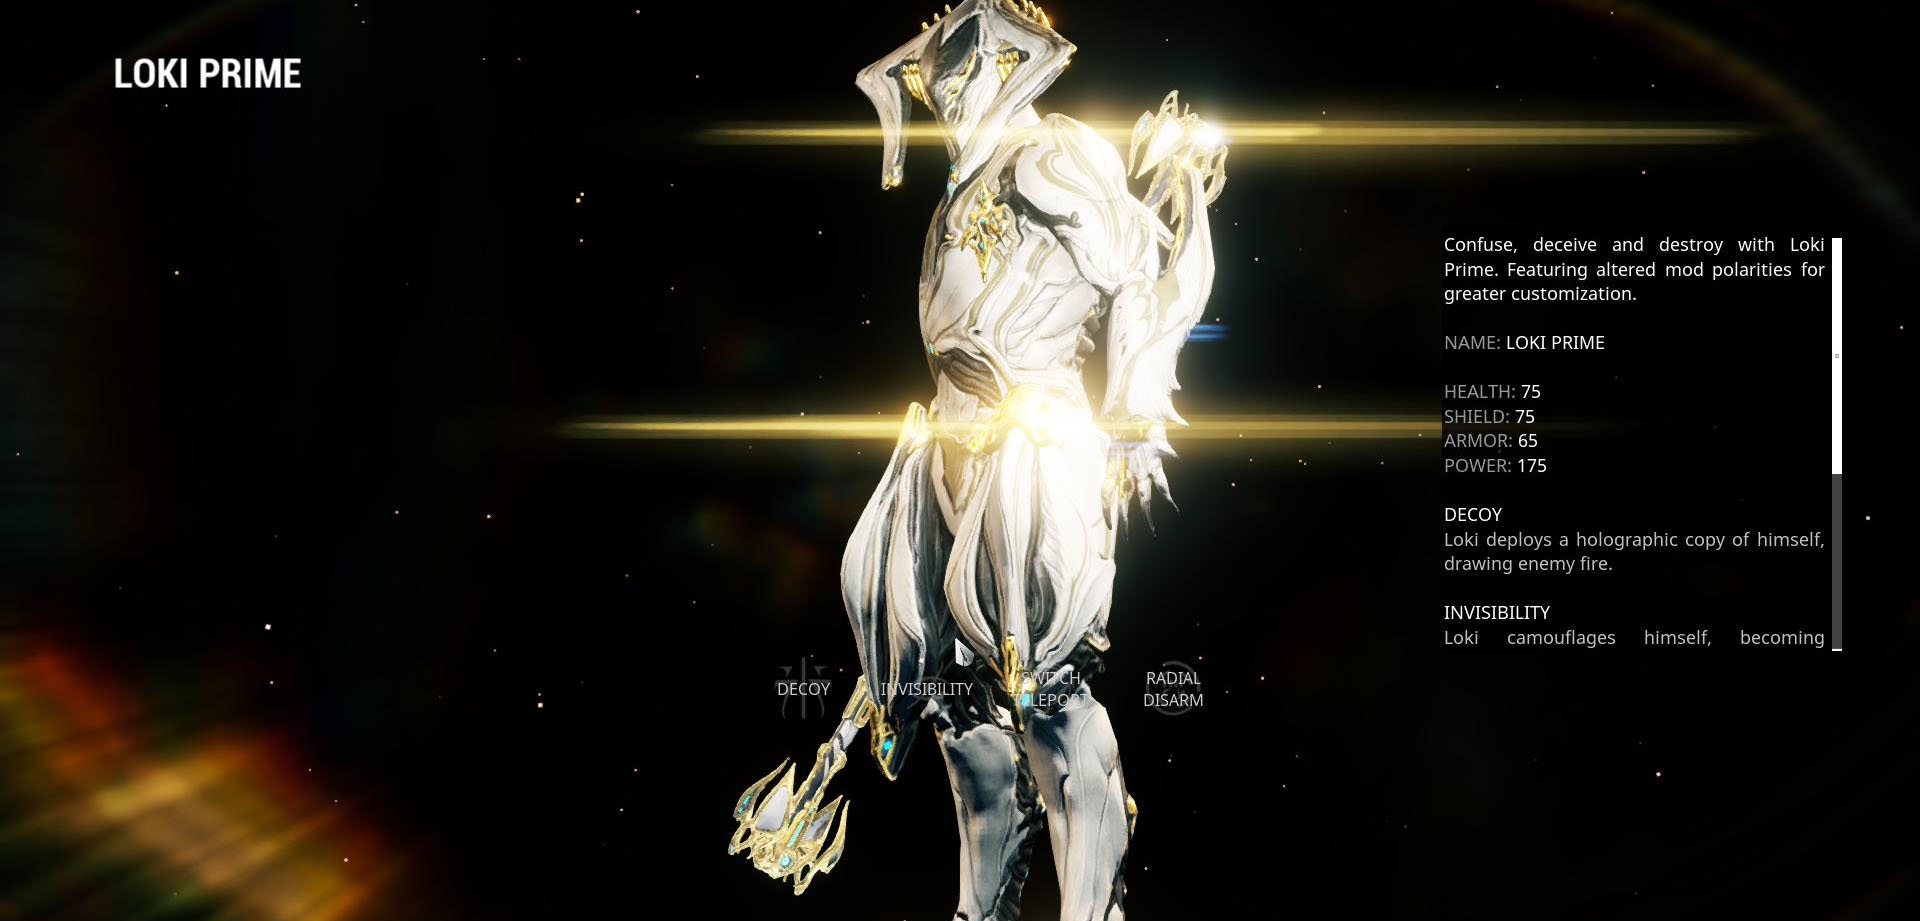 Loki Prime, one of the stealth based Warframes featured in the game.